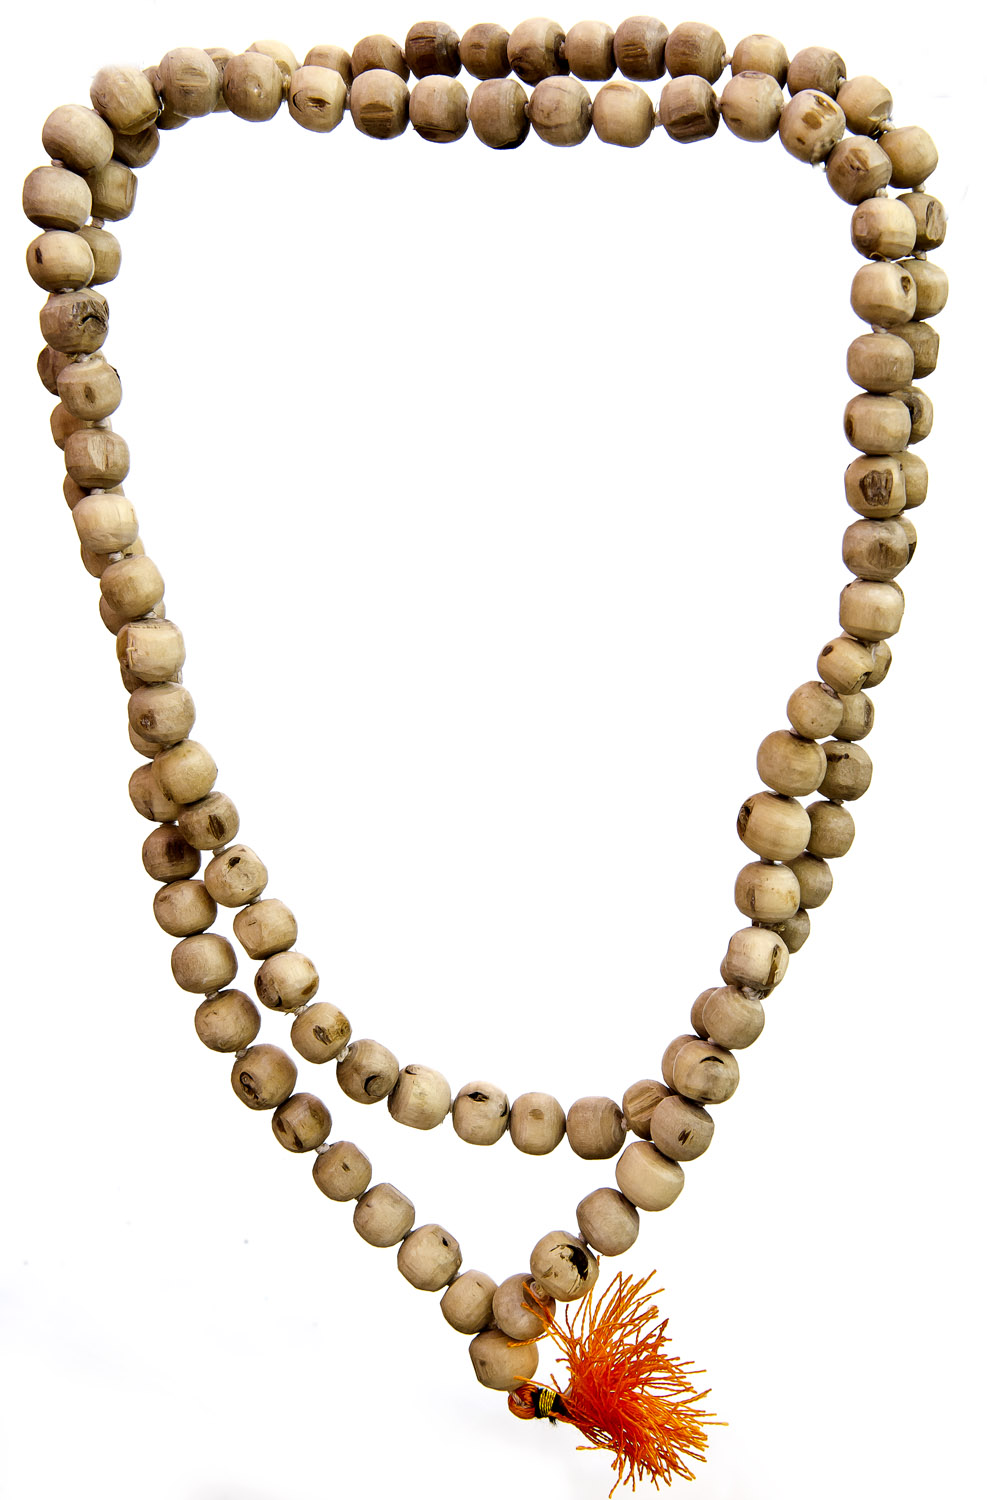 Tulsi Mala Rosary With 108 Beads For Chanting